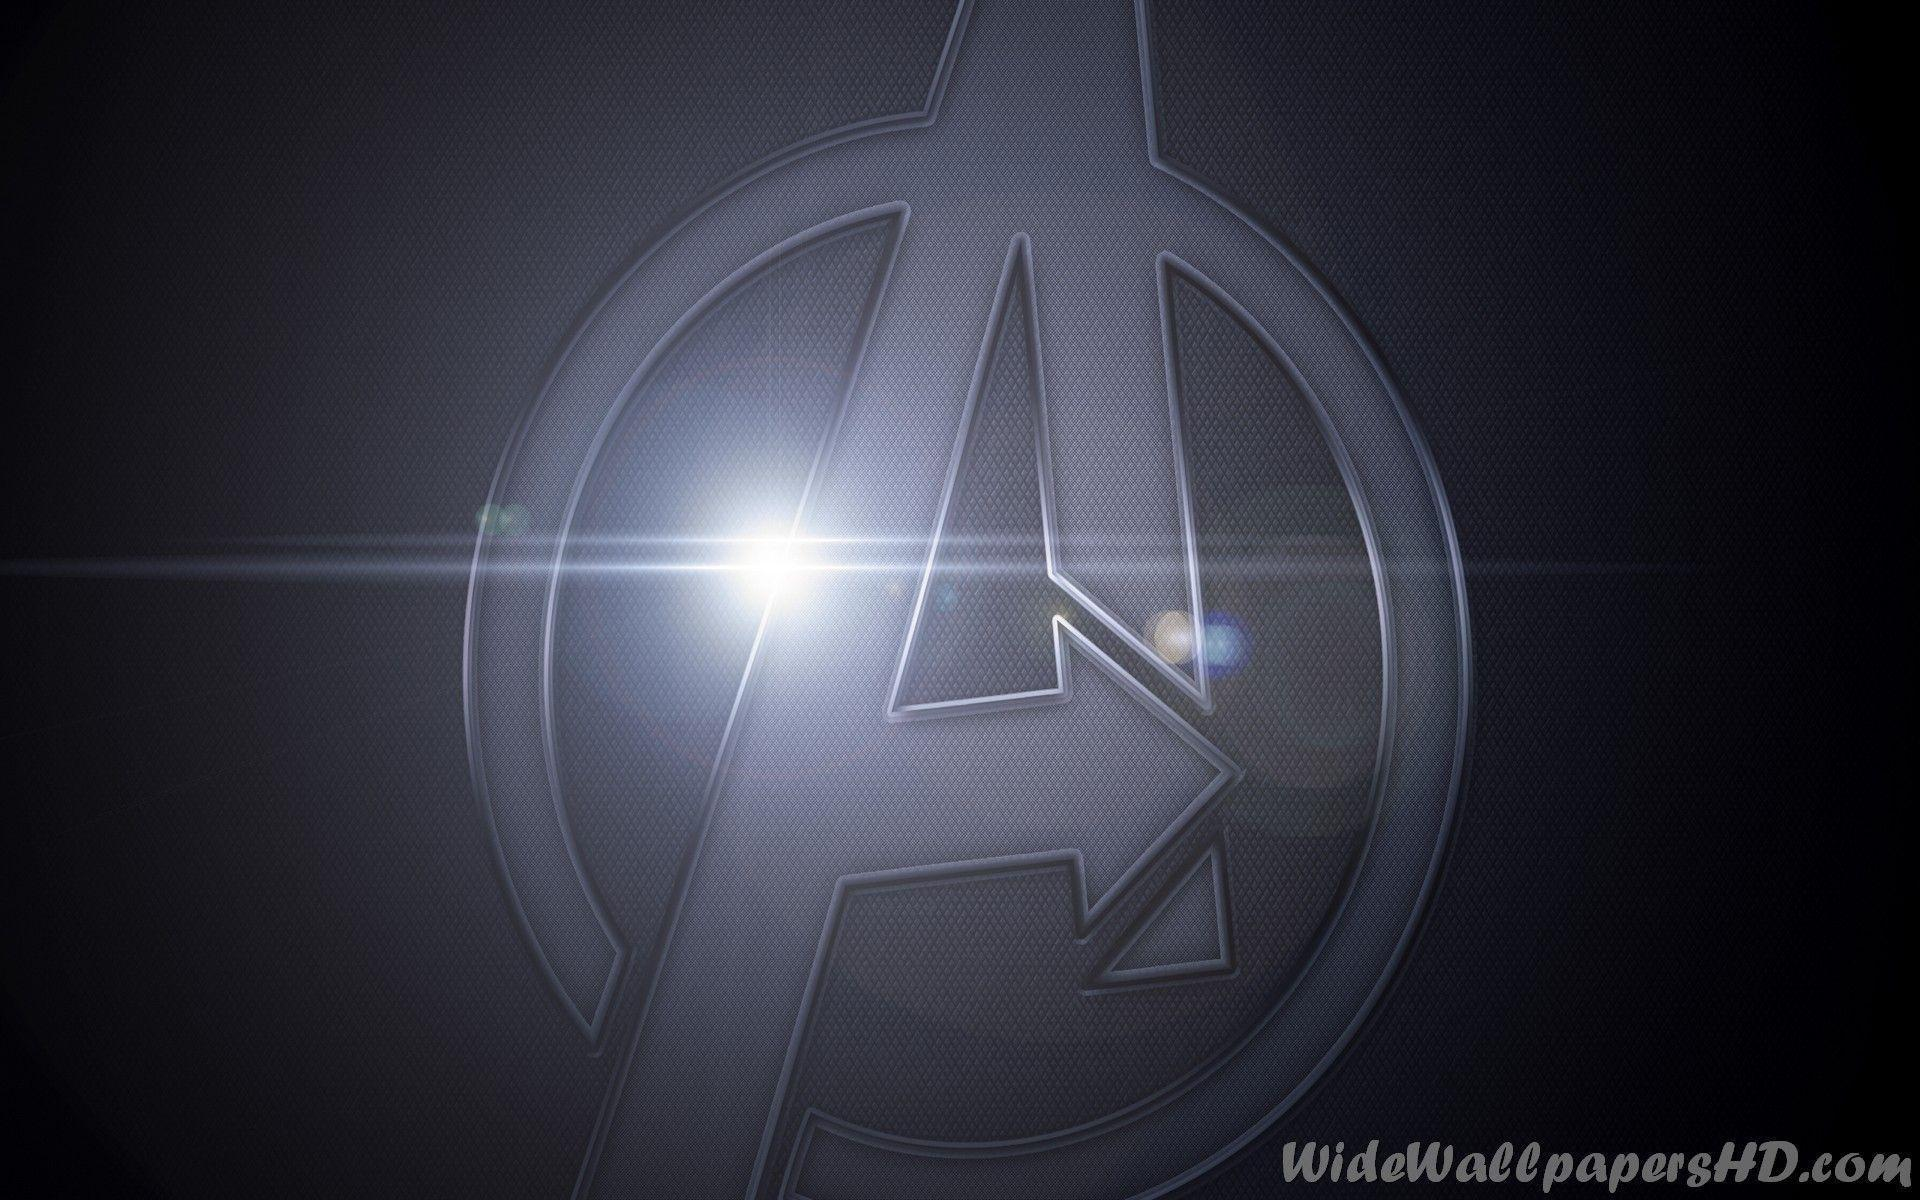 Logo The Avengers Wallpapers X Widewallpapershd